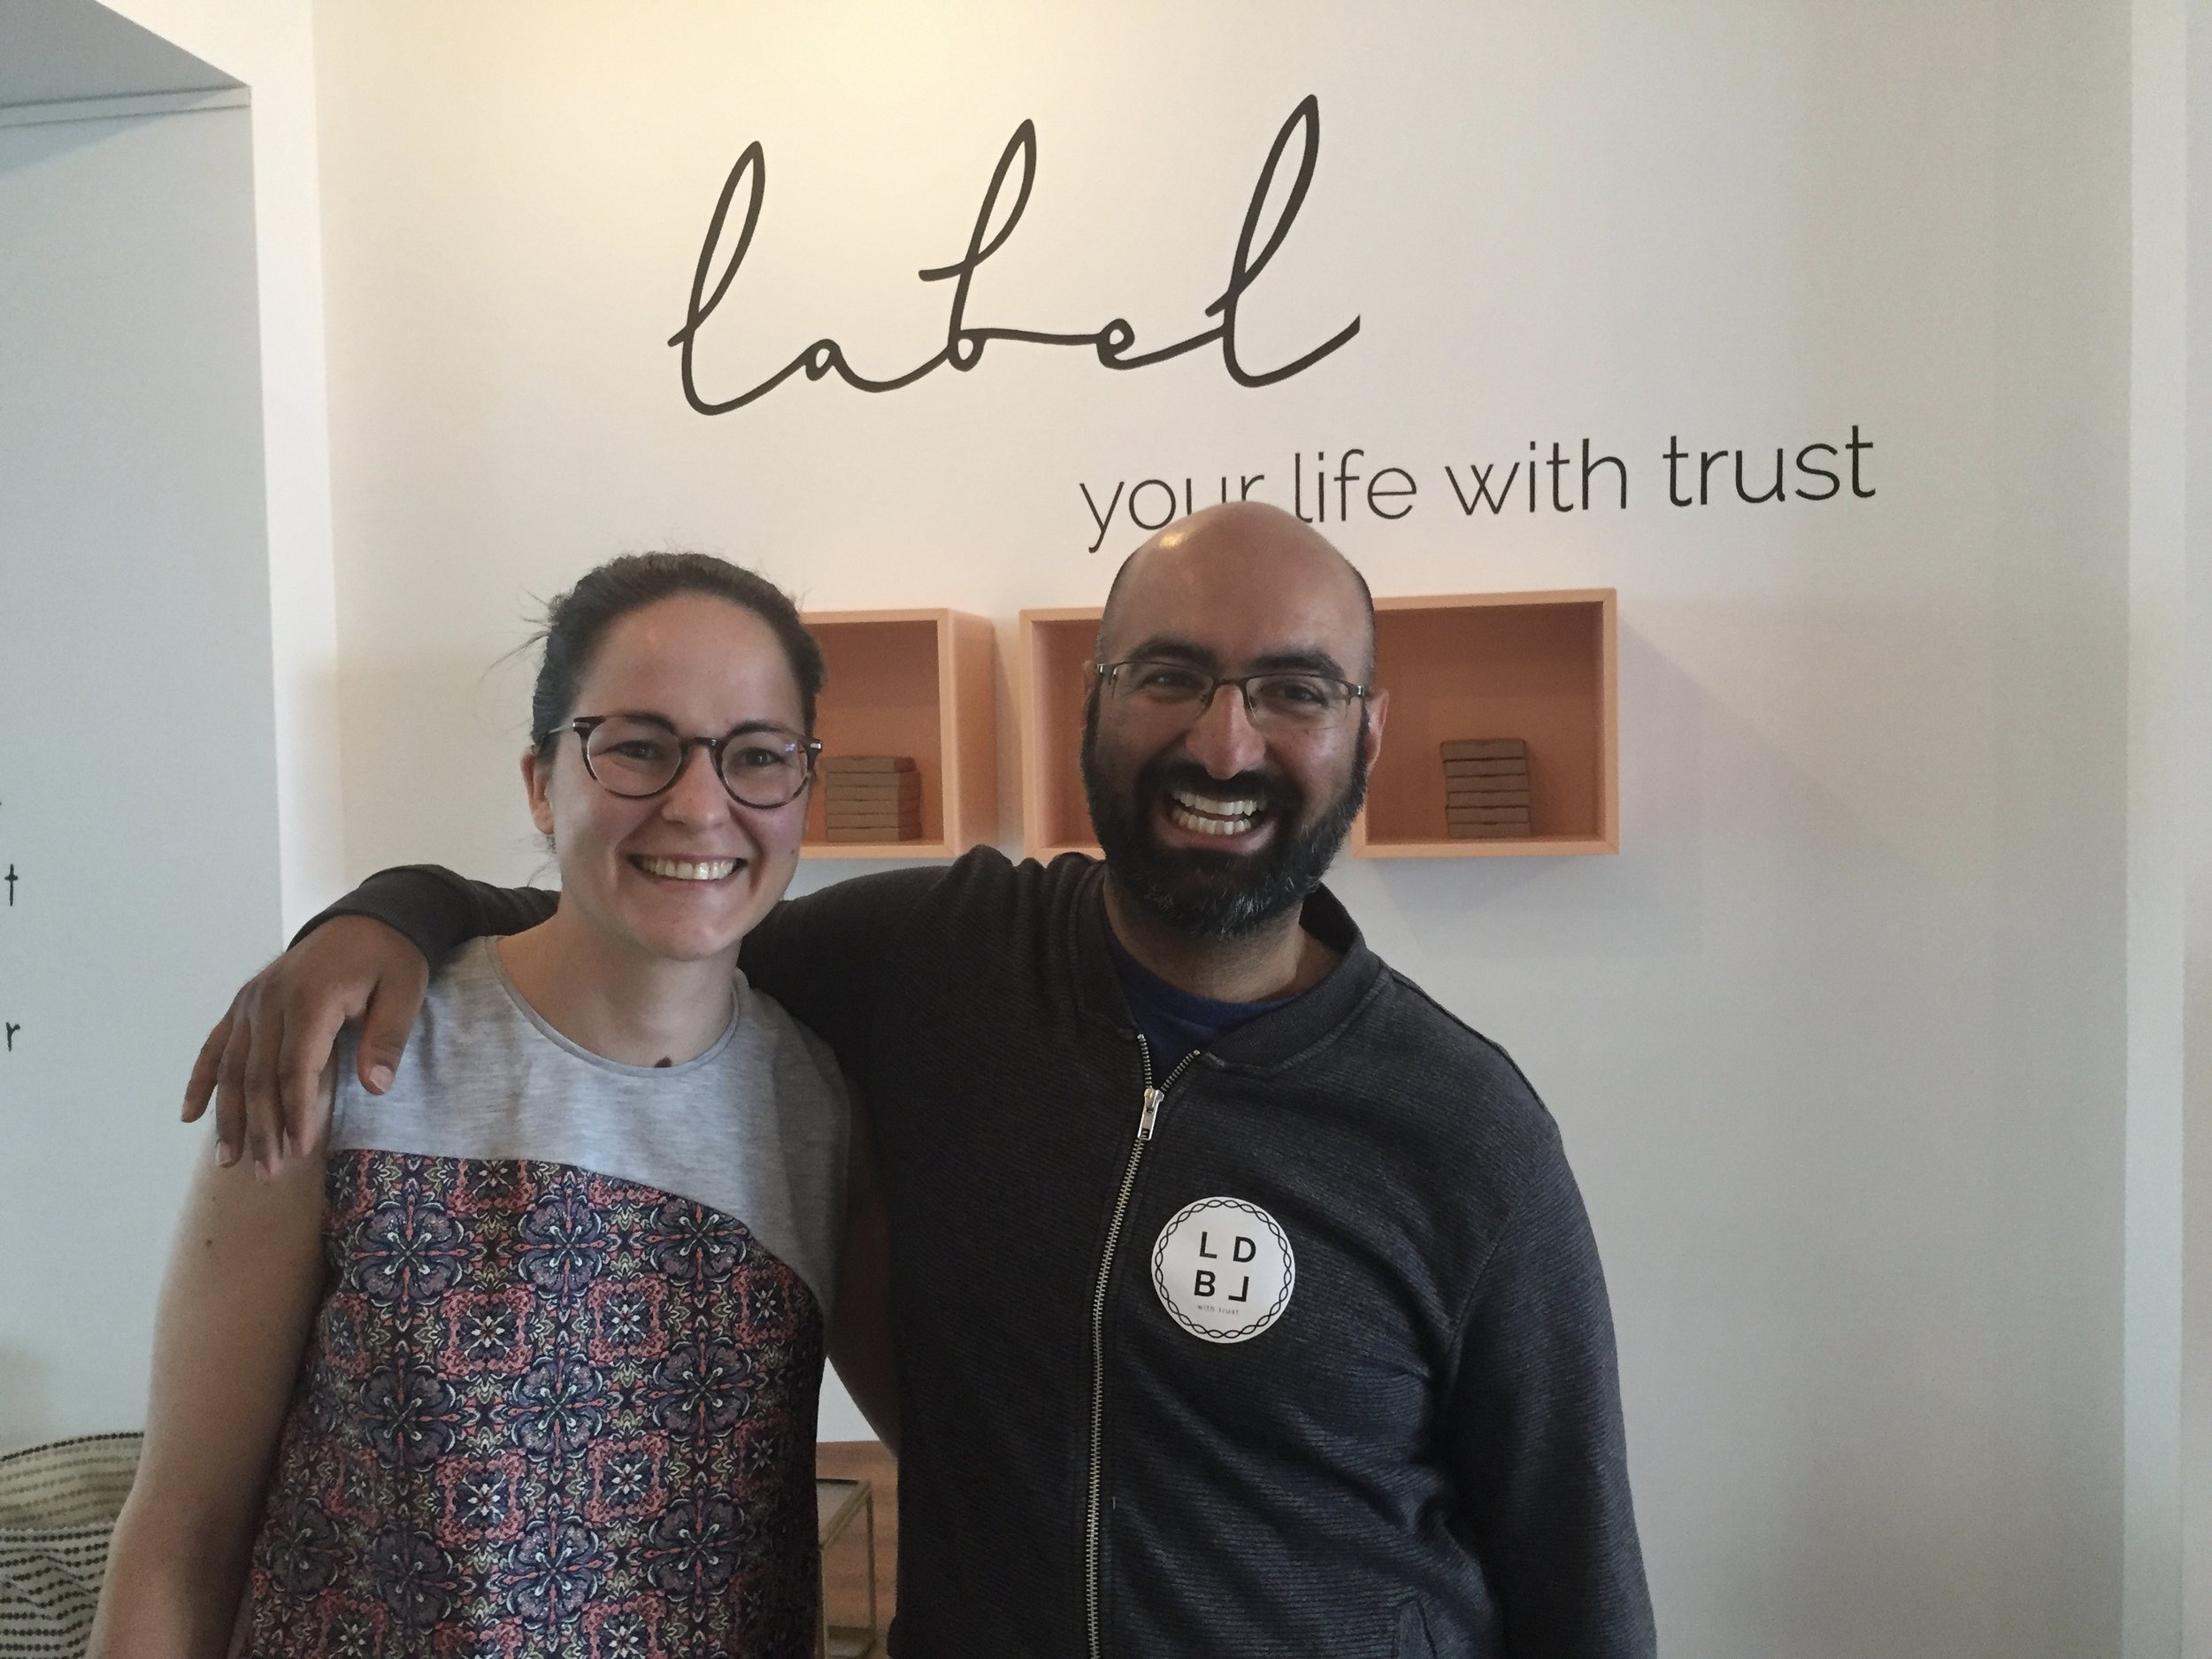 Here's me with one of the co-founders of this  trust movement